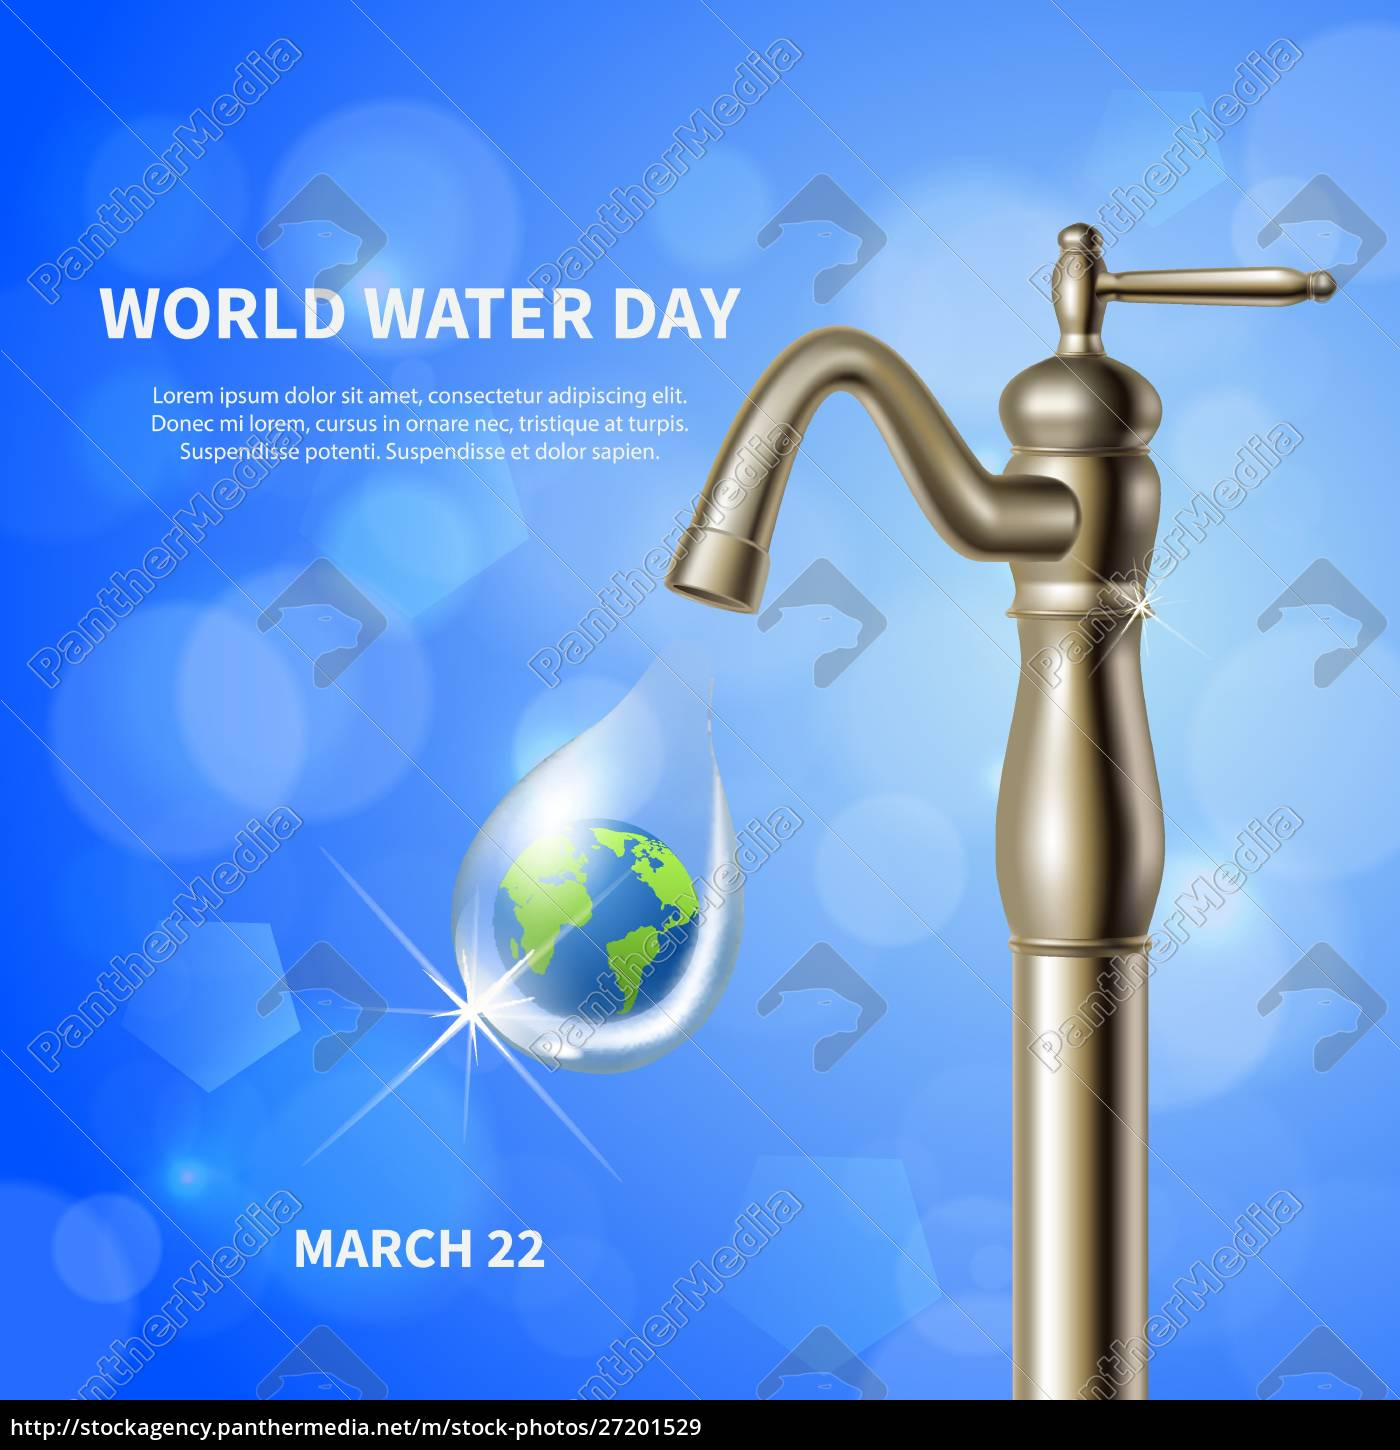 world, water, day, advertising, blue, poster - 27201529